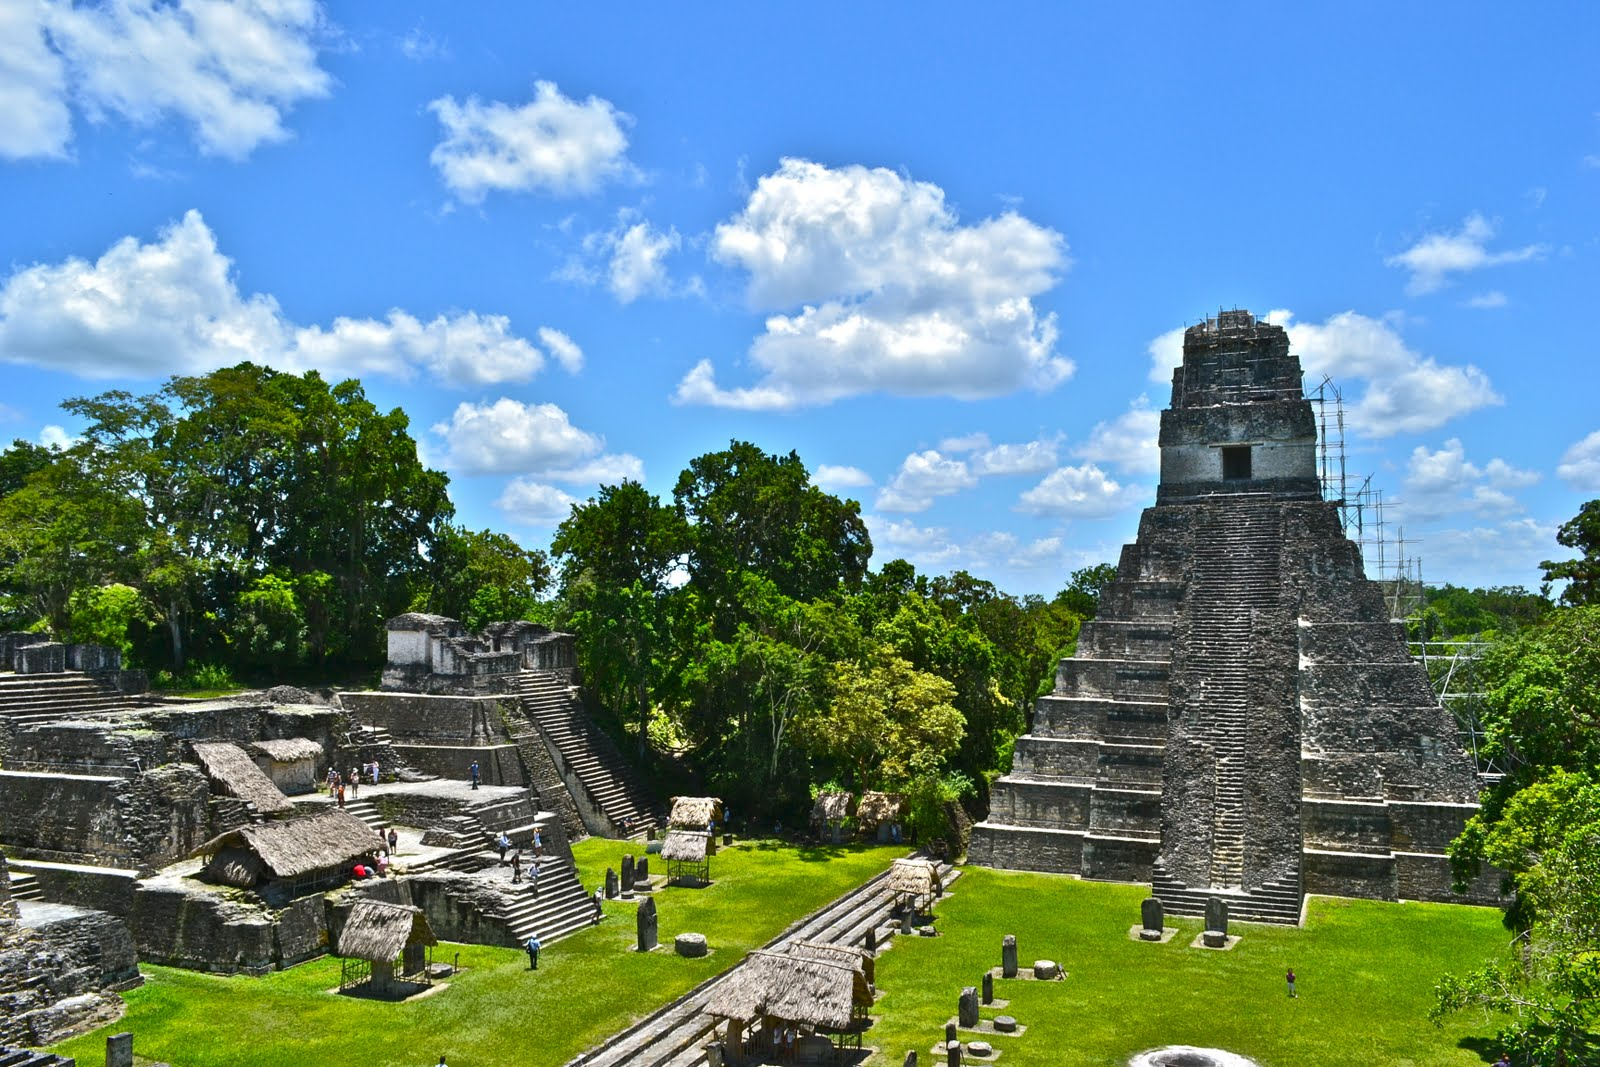 mayan civilization tikal The maya culture was believed to be a sophisticated civilization recognized for its agriculture, astronomy, and art known for advanced, interconnected roads between various subdivisions were the incas, but this new discovery sees the mayan civilization as a strong competitor laser imaging shows wide.